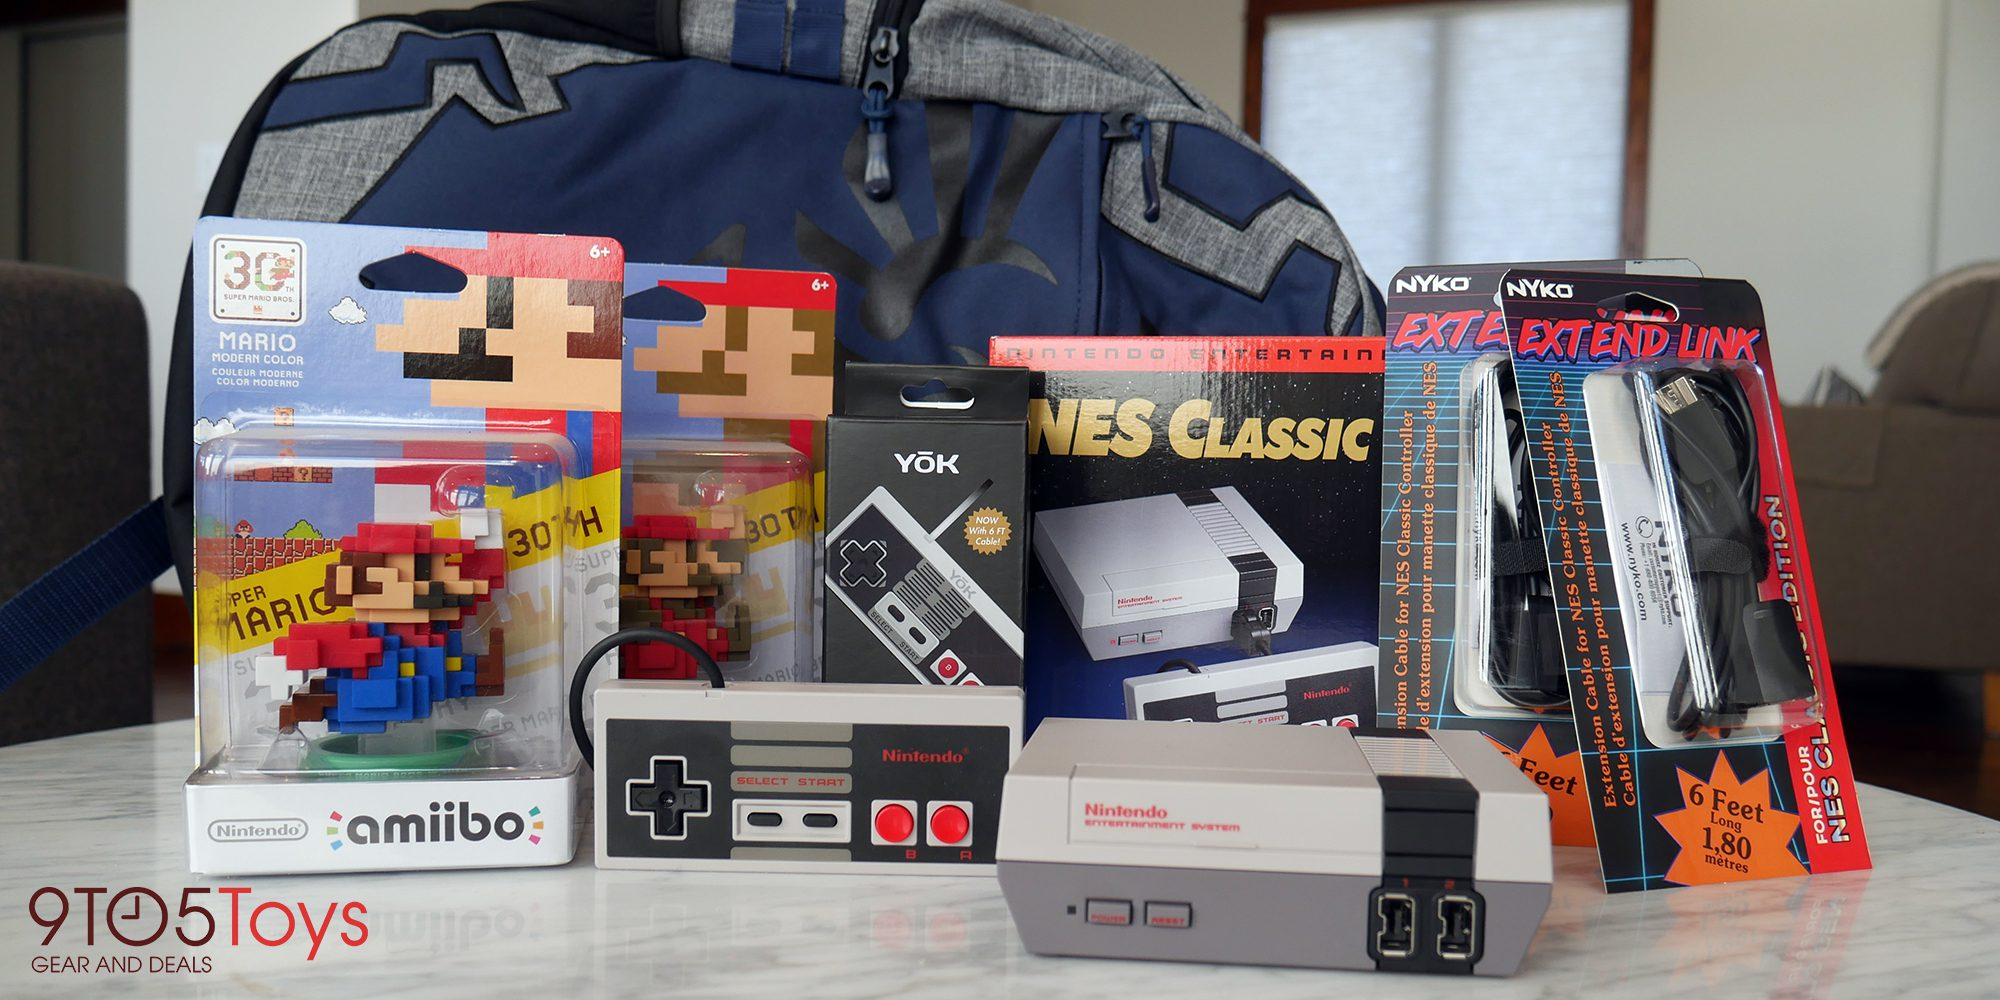 nes-classic-giveaway-9to5toys